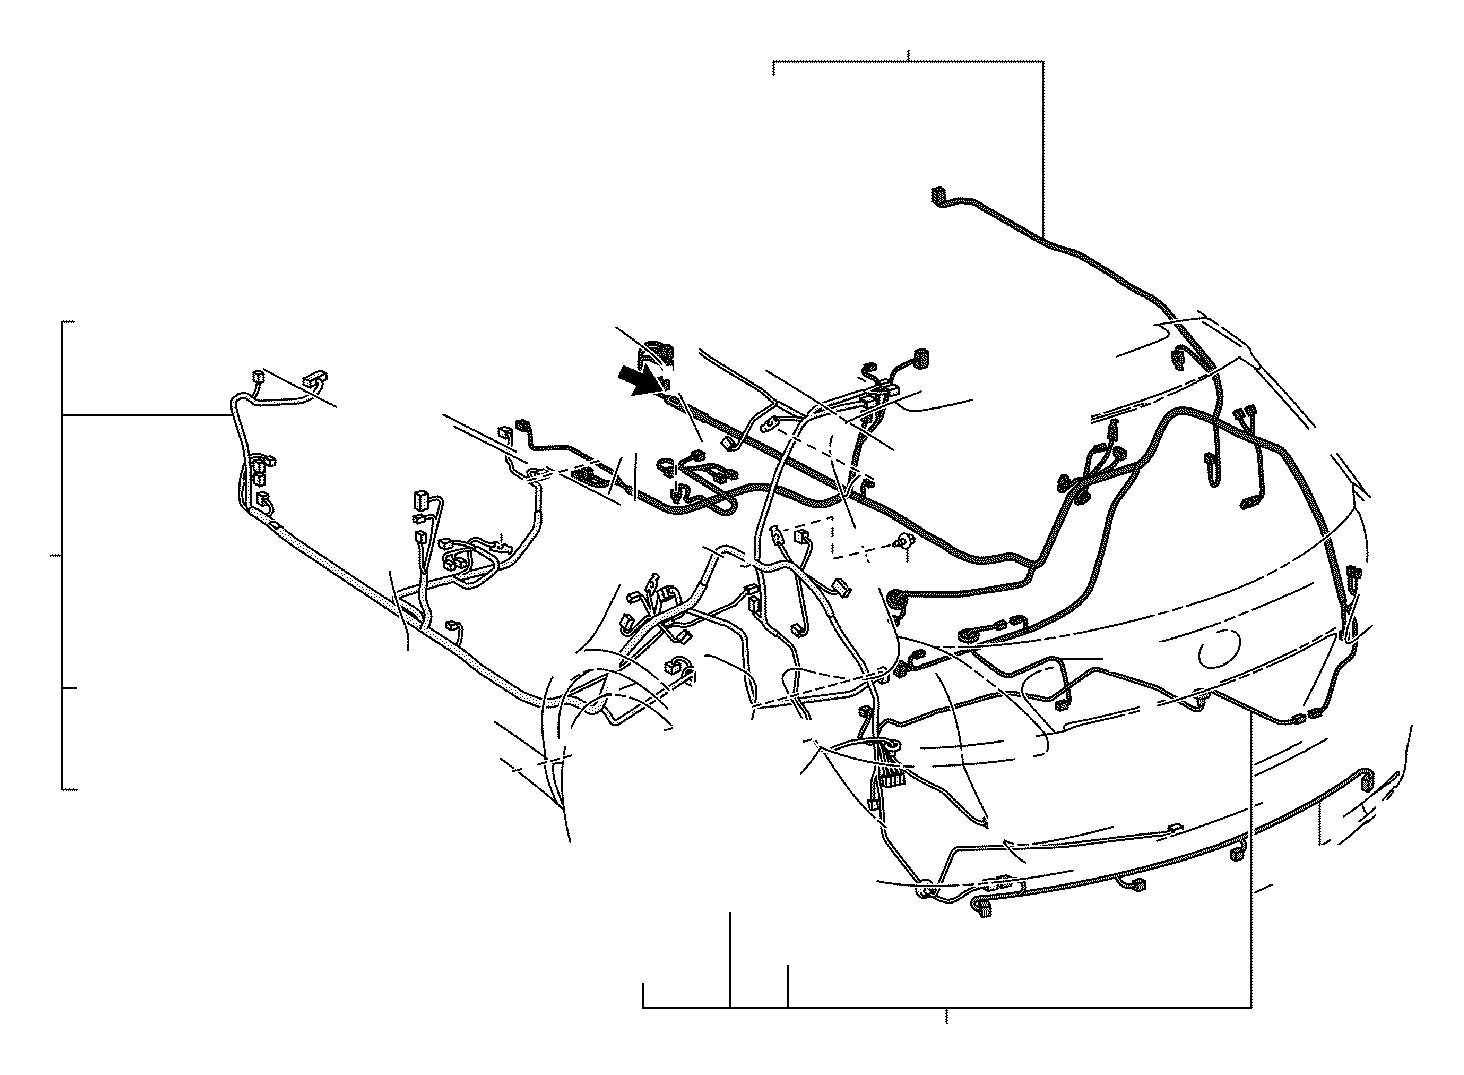 Wiring Diagram For A Toyota Venza